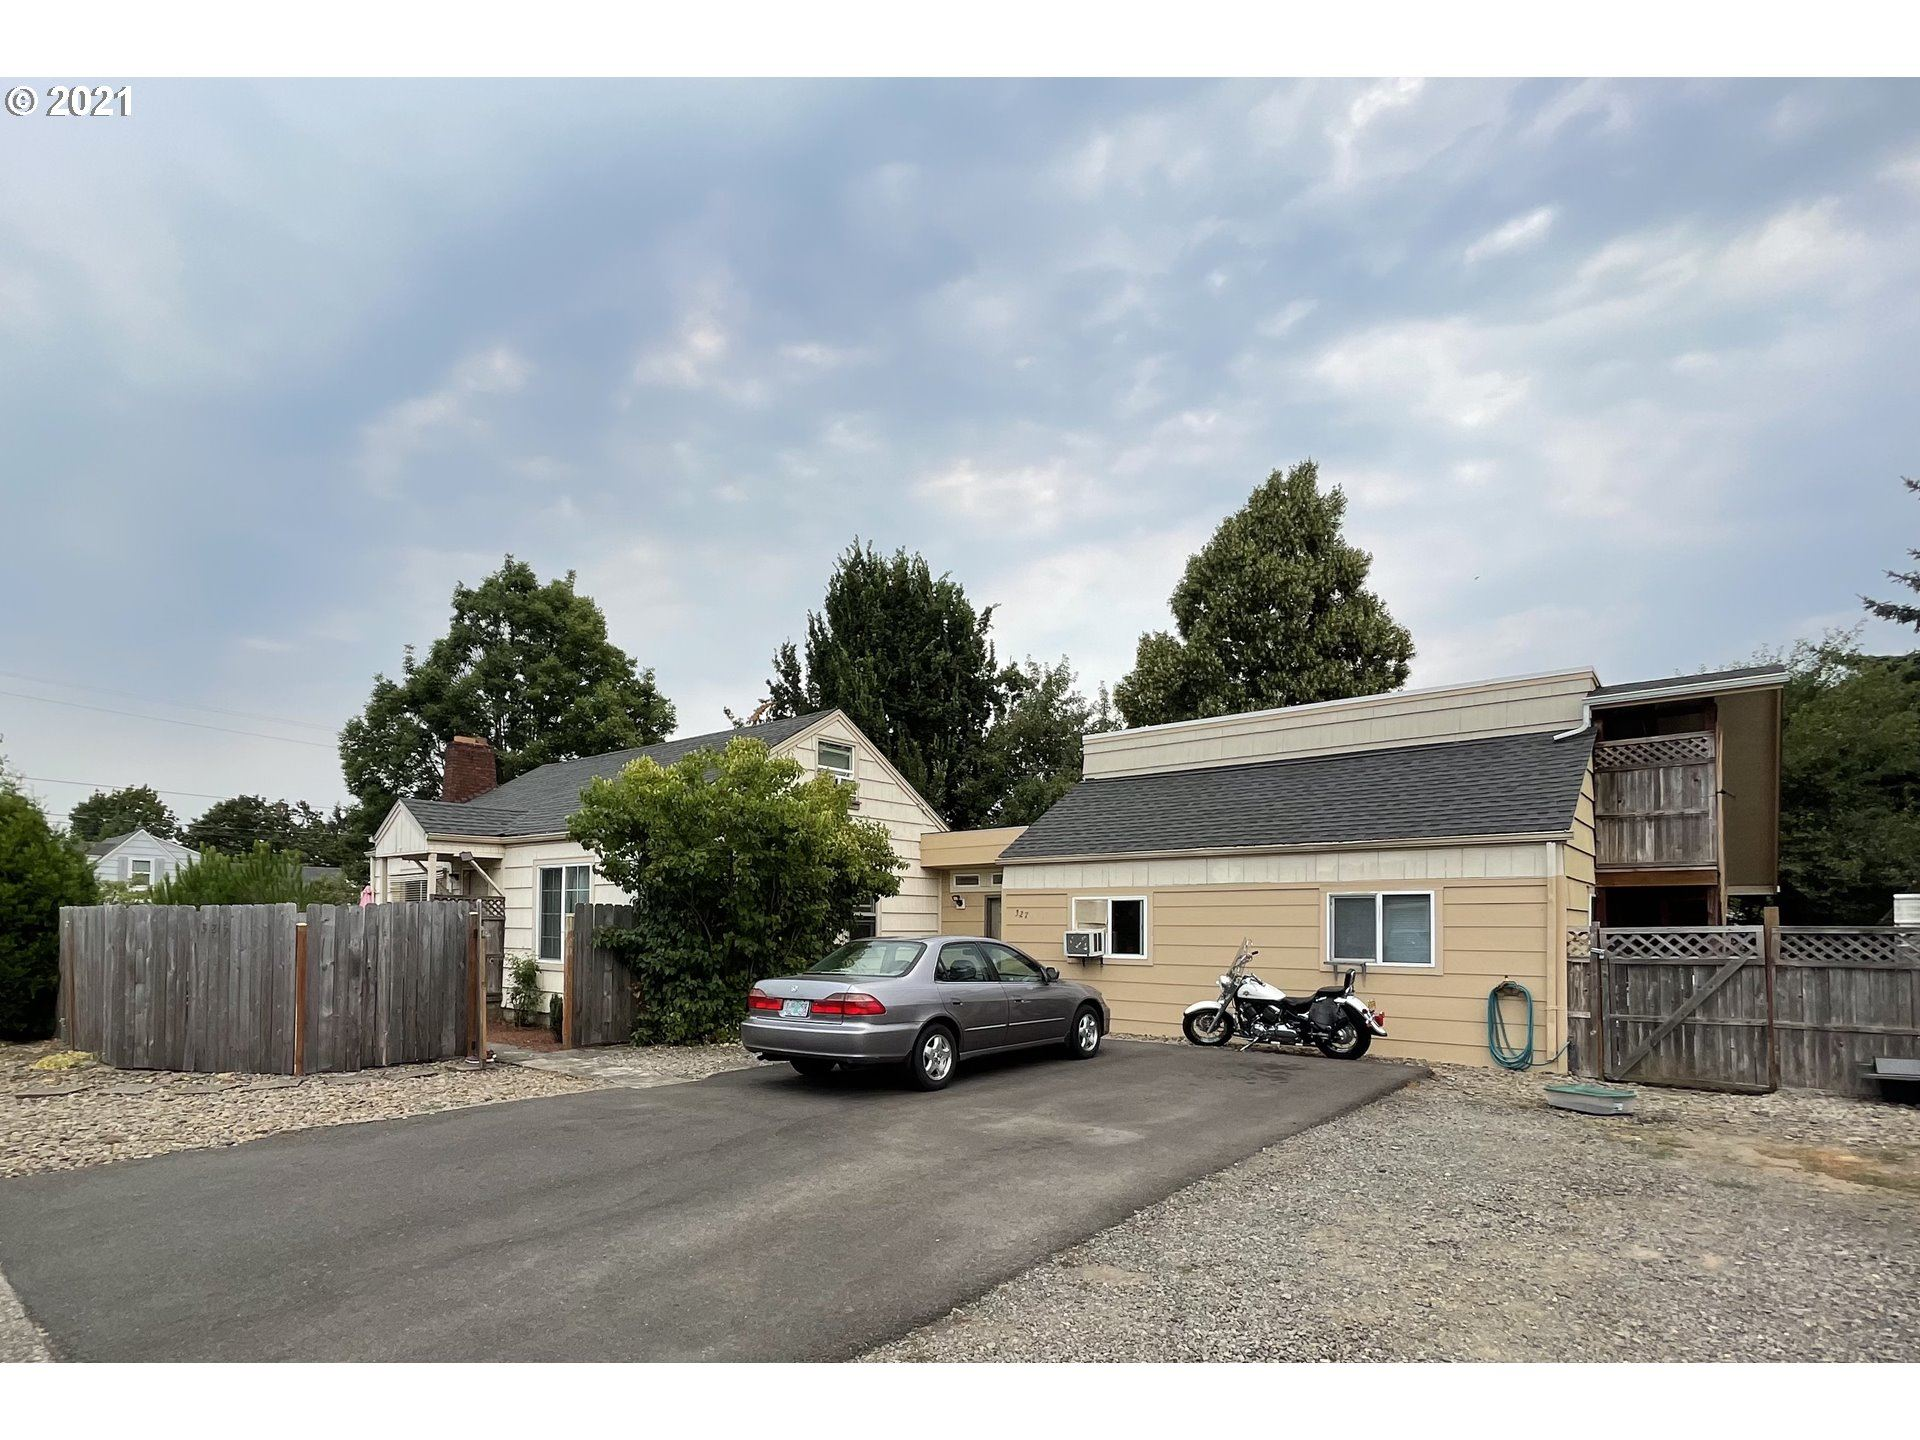 325 S 37TH ST, Springfield, OR 97478 - MLS#: 21280023